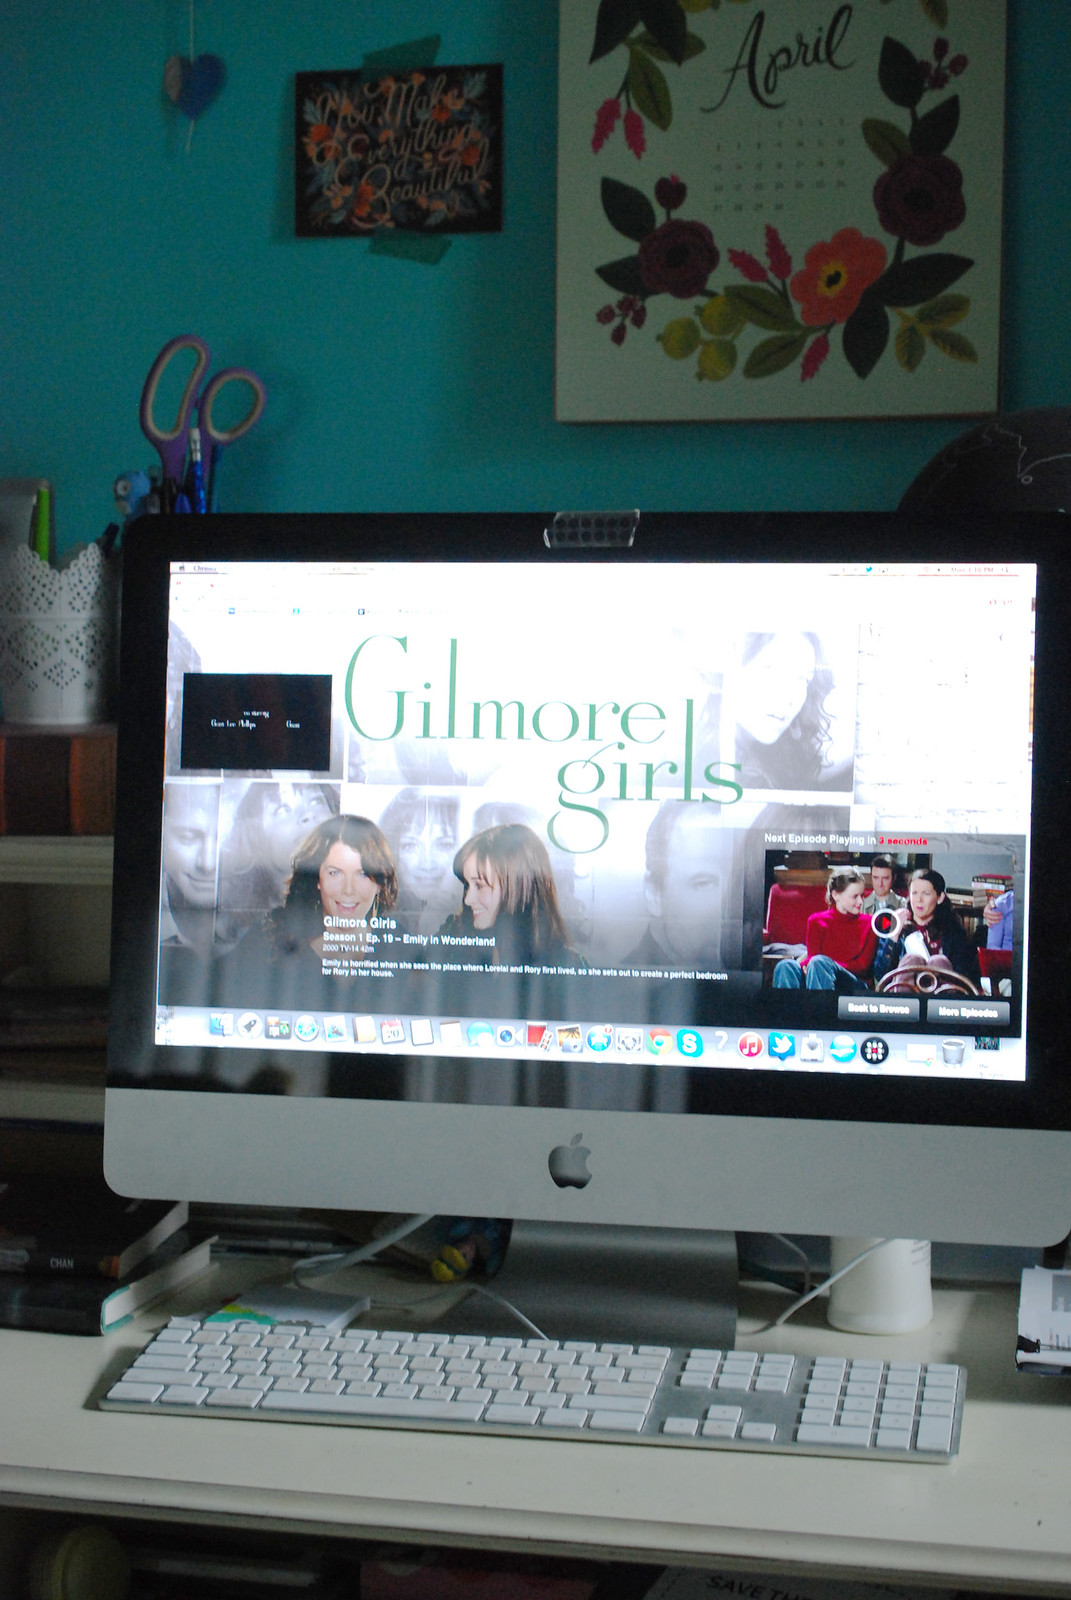 Netflixing Gilmore Girls